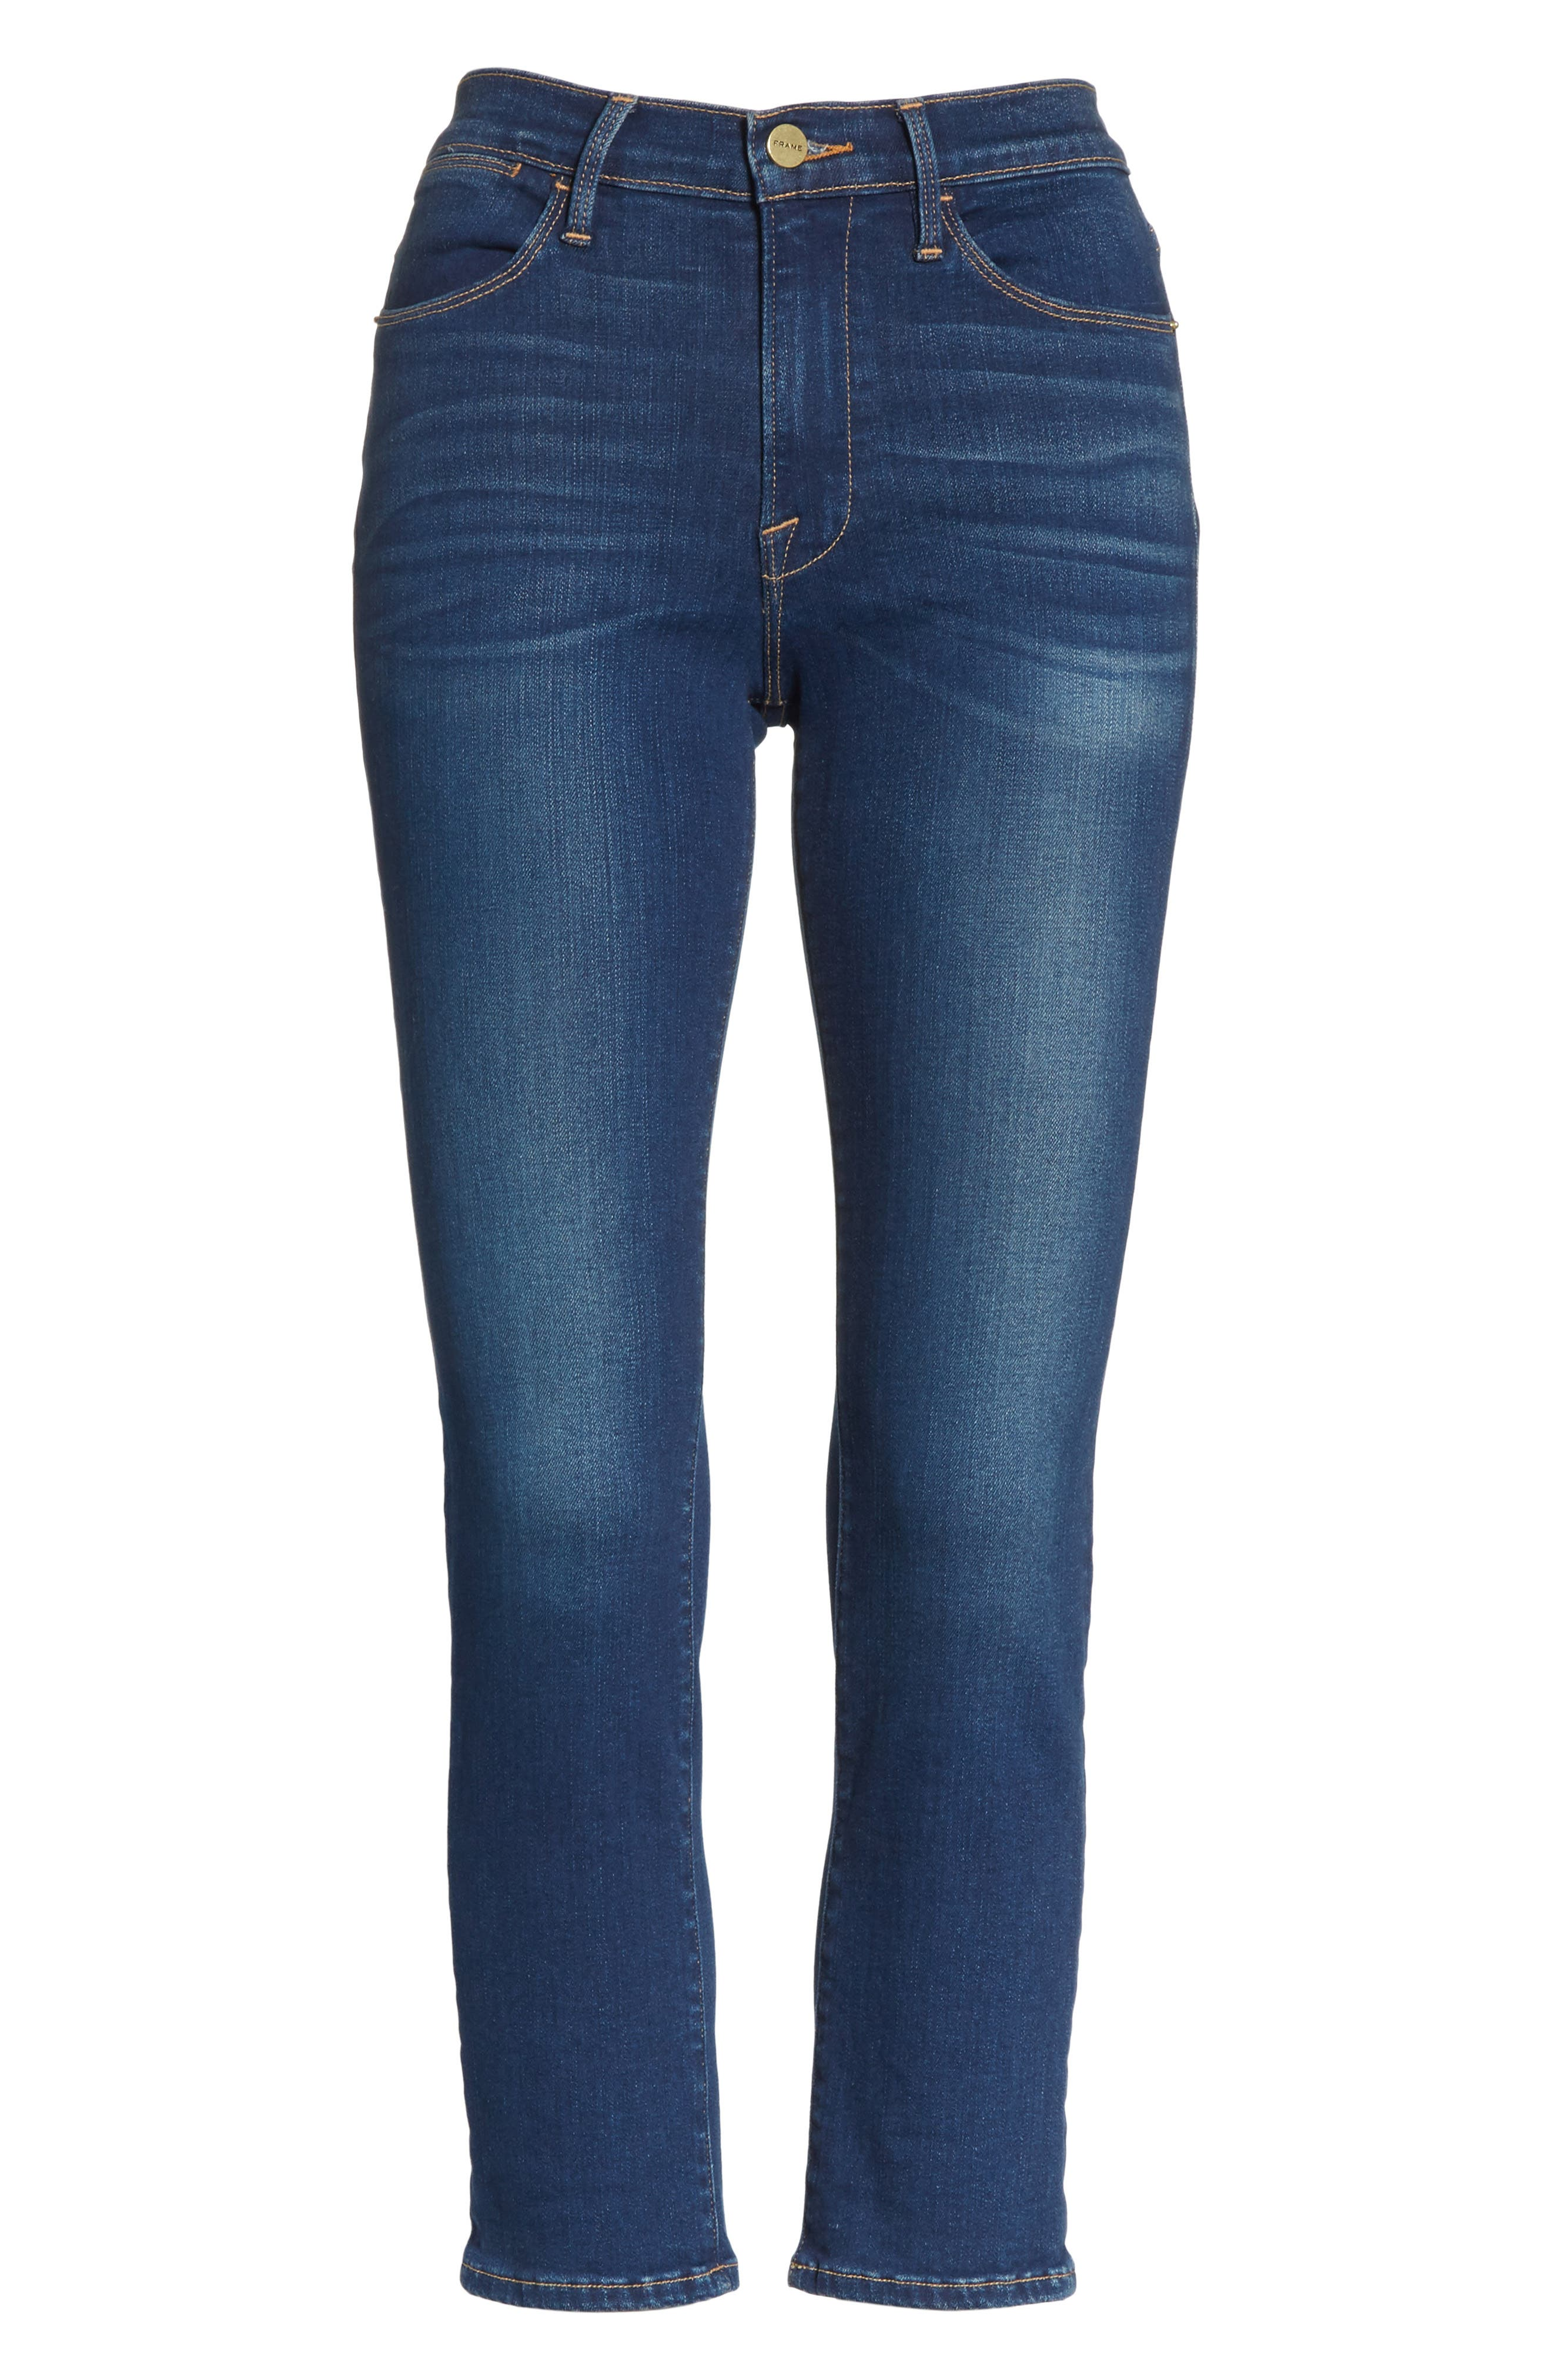 Le High Skinny Ankle Jeans,                             Alternate thumbnail 6, color,                             Murray Field